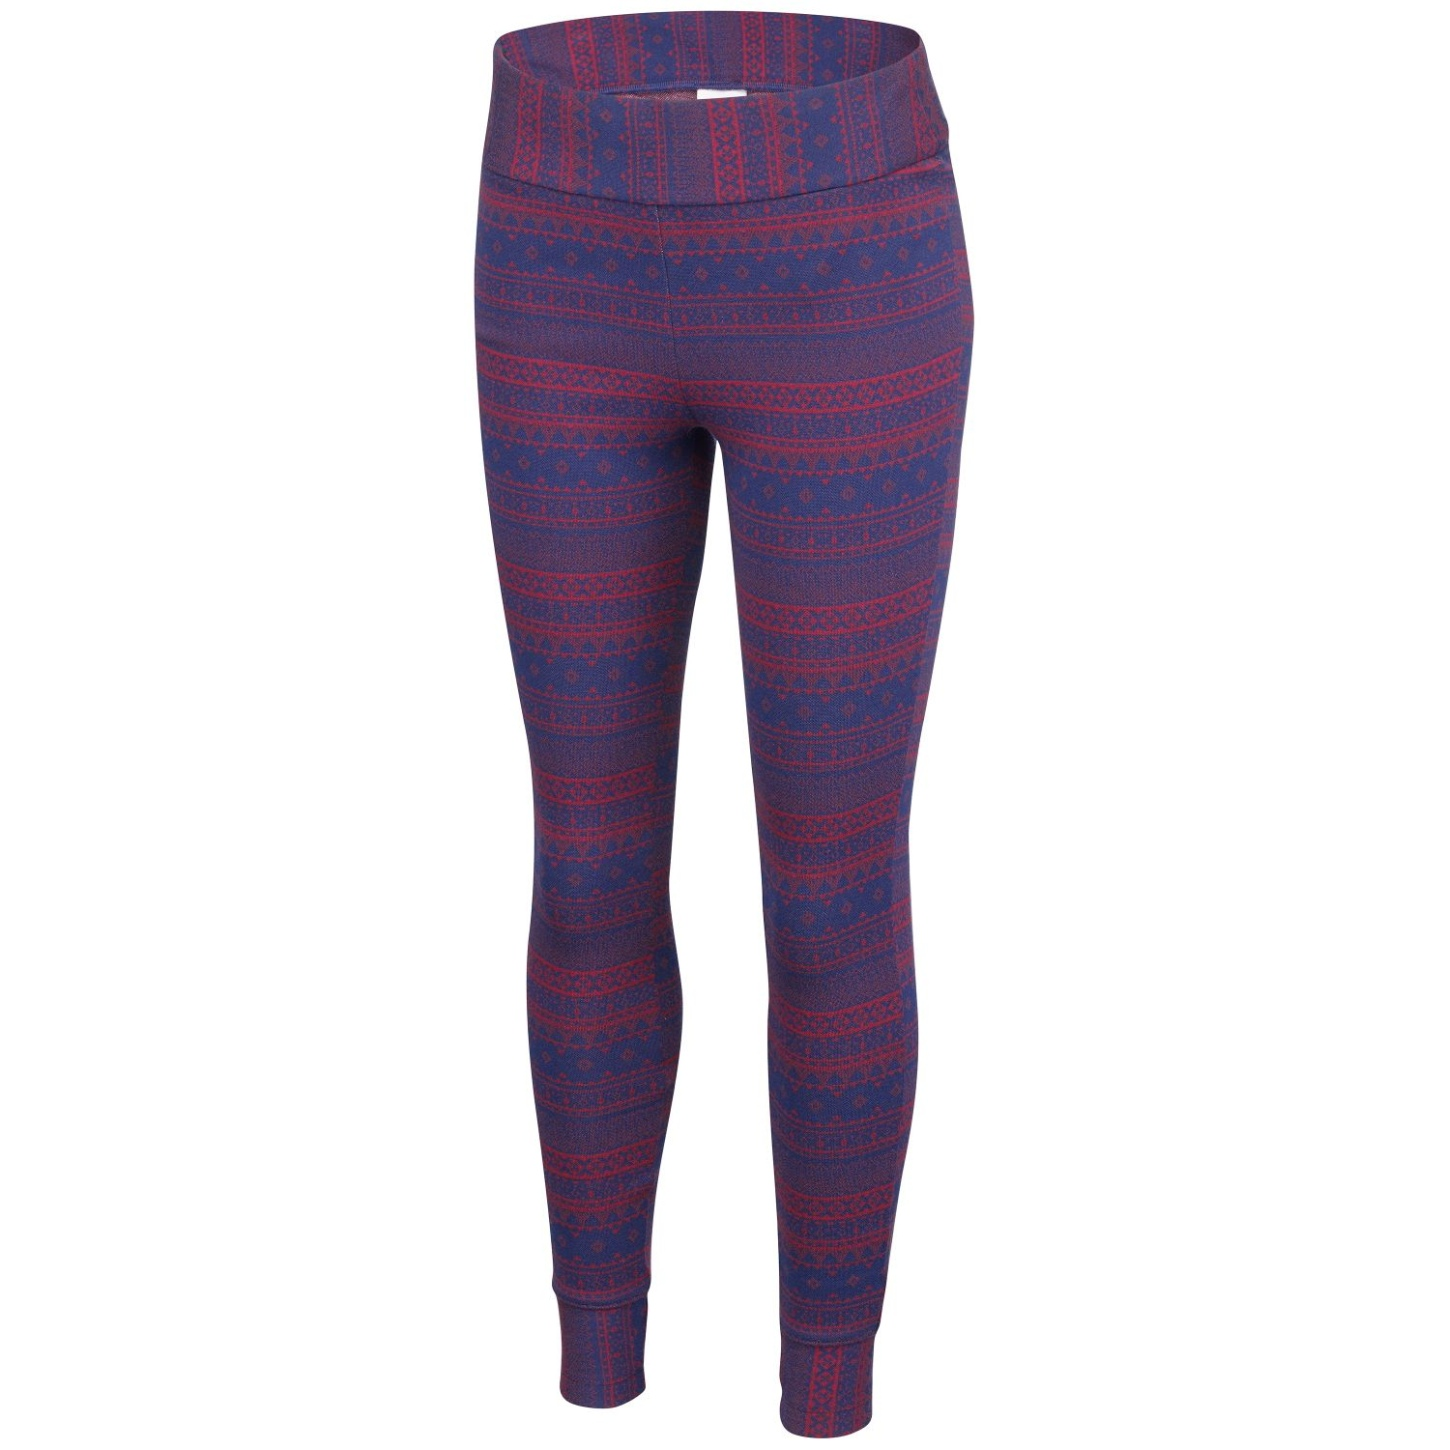 Columbia Women's Aspen Lodge Jacquard Leggings Marsala Red Jacquard-30